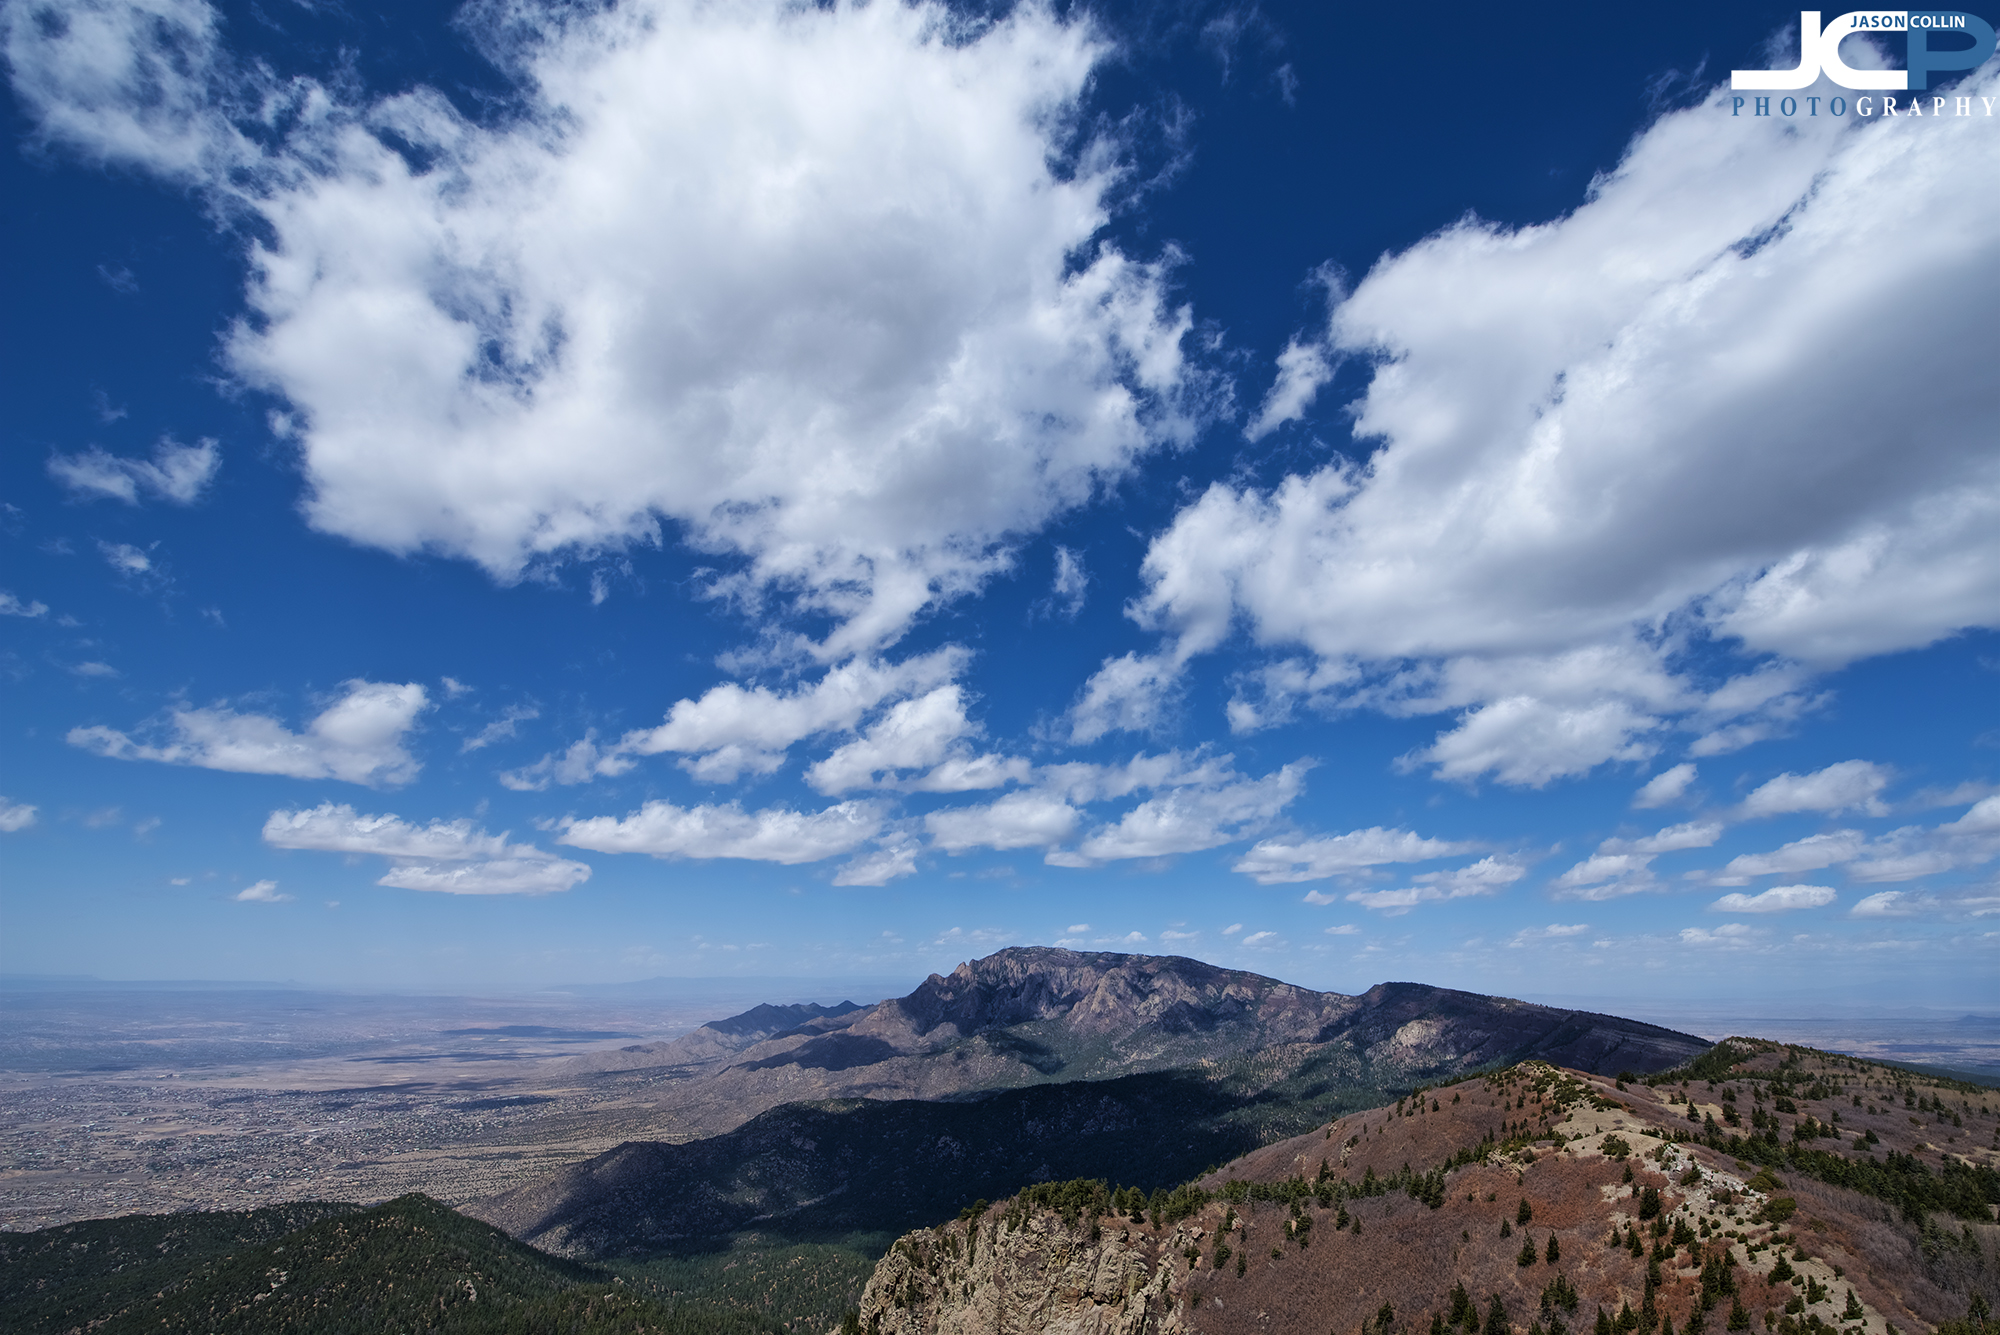 Looking at North Sandia Peak from the summit of South Sandia Peak with panorama view of Albuquerque, New Mexico